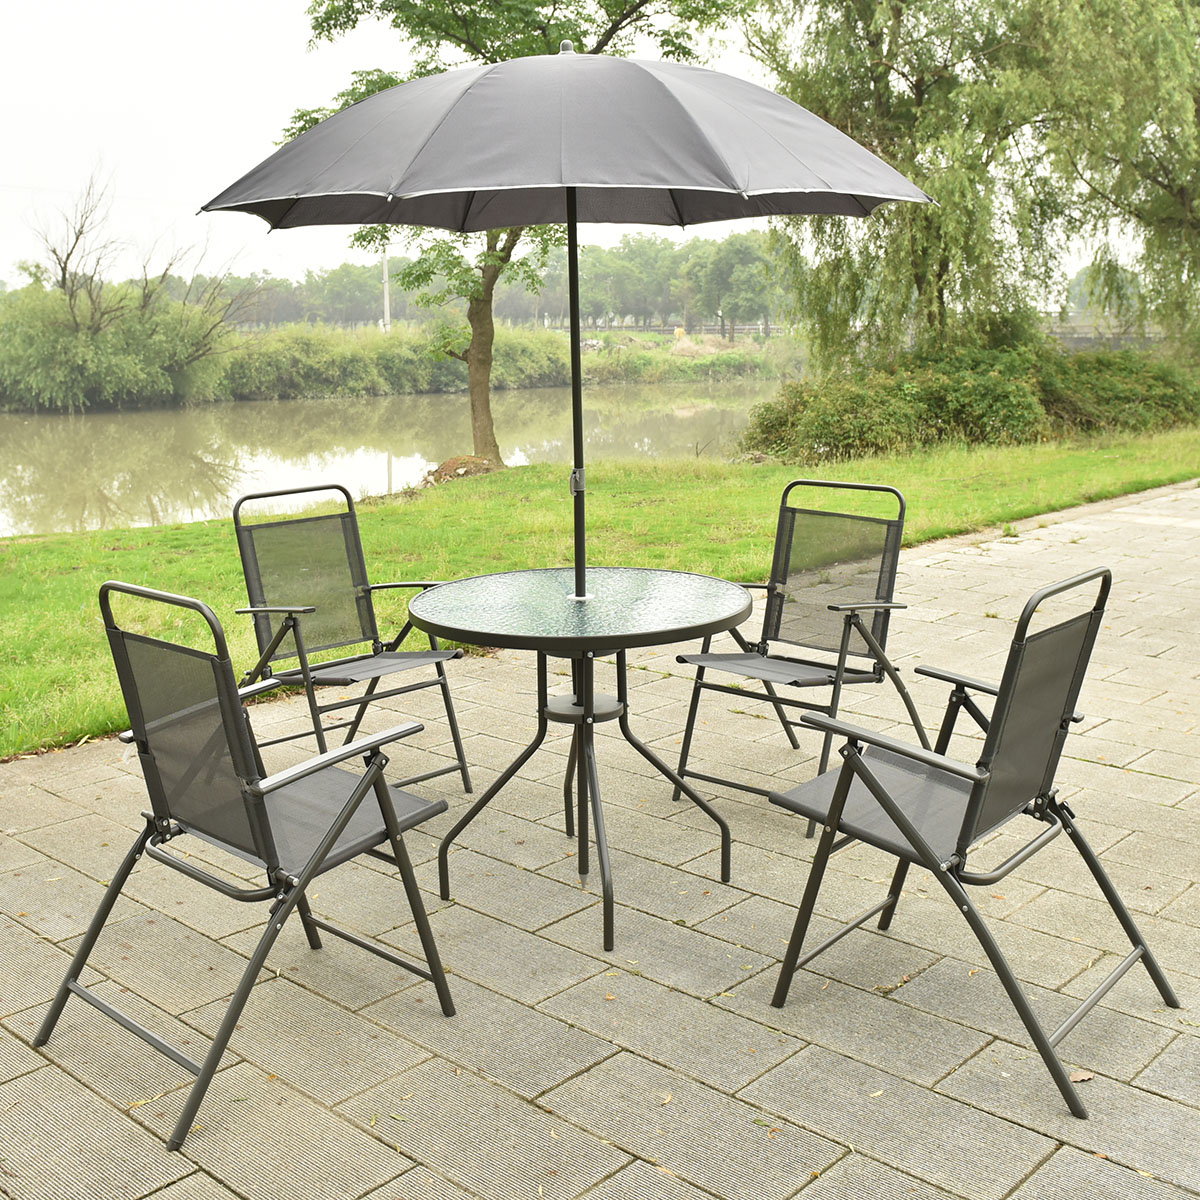 Costway 6 PCS Patio Garden Set Furniture Umbrella Gray With 4 Folding Chairs  Table